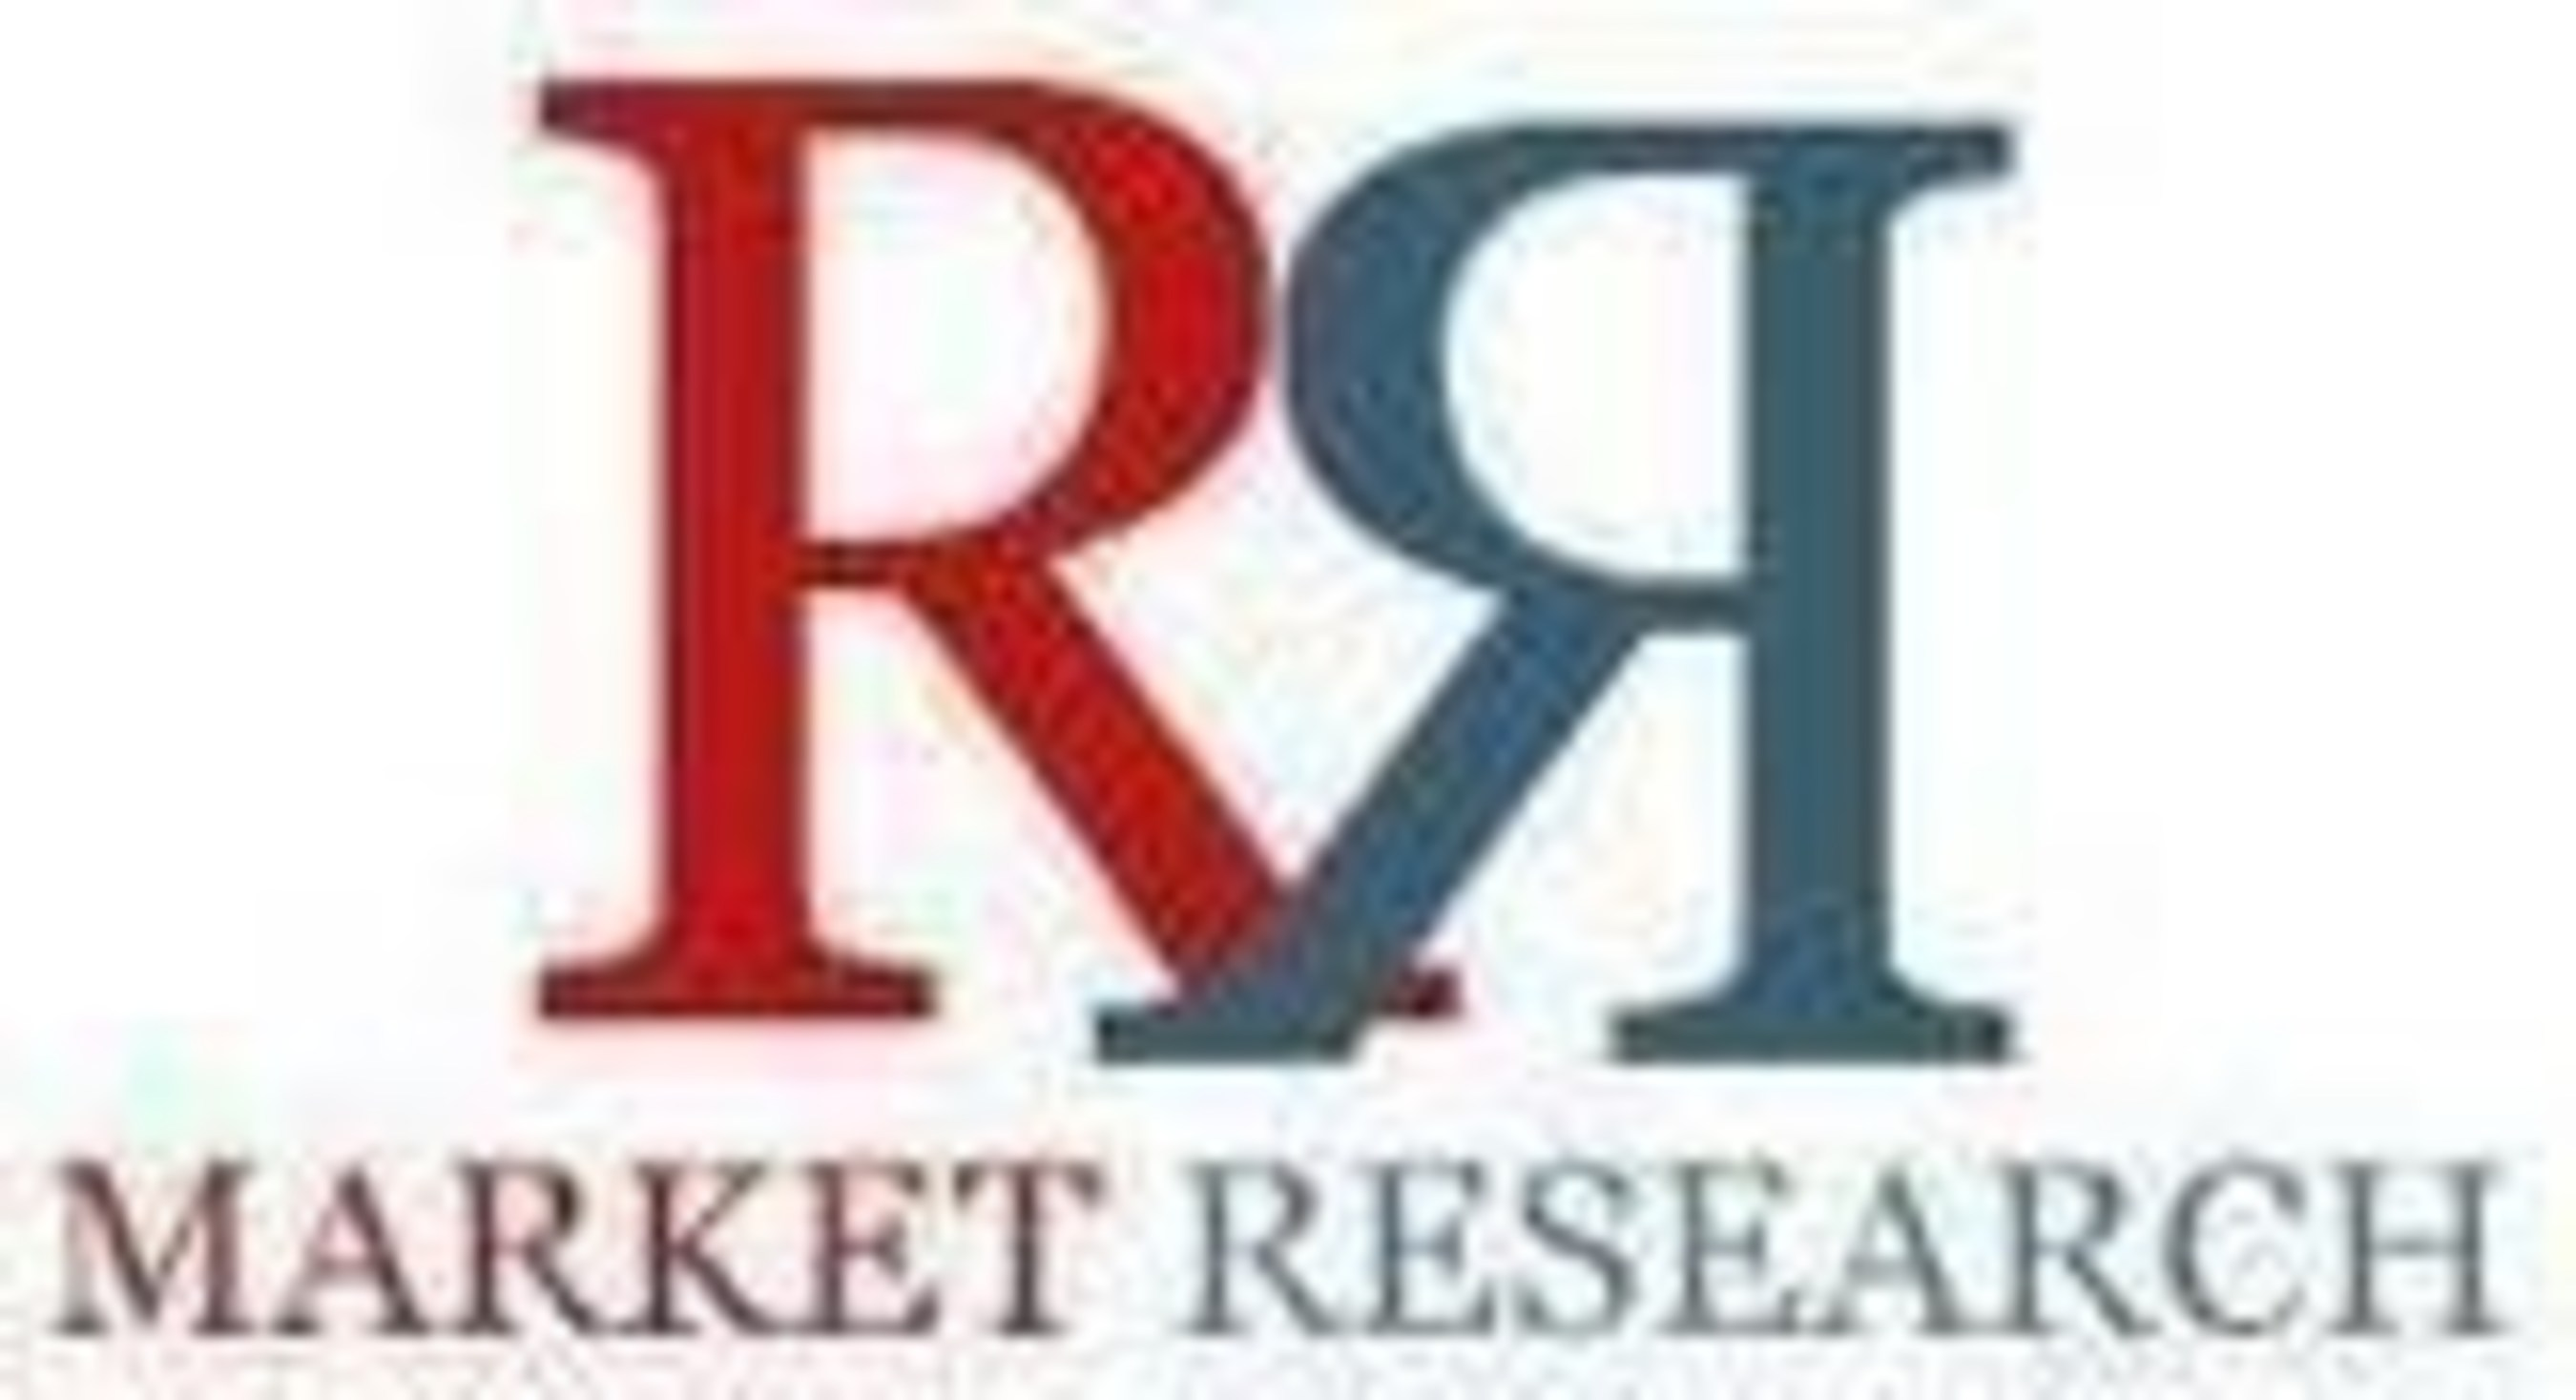 Position Sensor Market Growing at 6.1% CAGR to 2022 Driven by Innovation in Automotive Technology